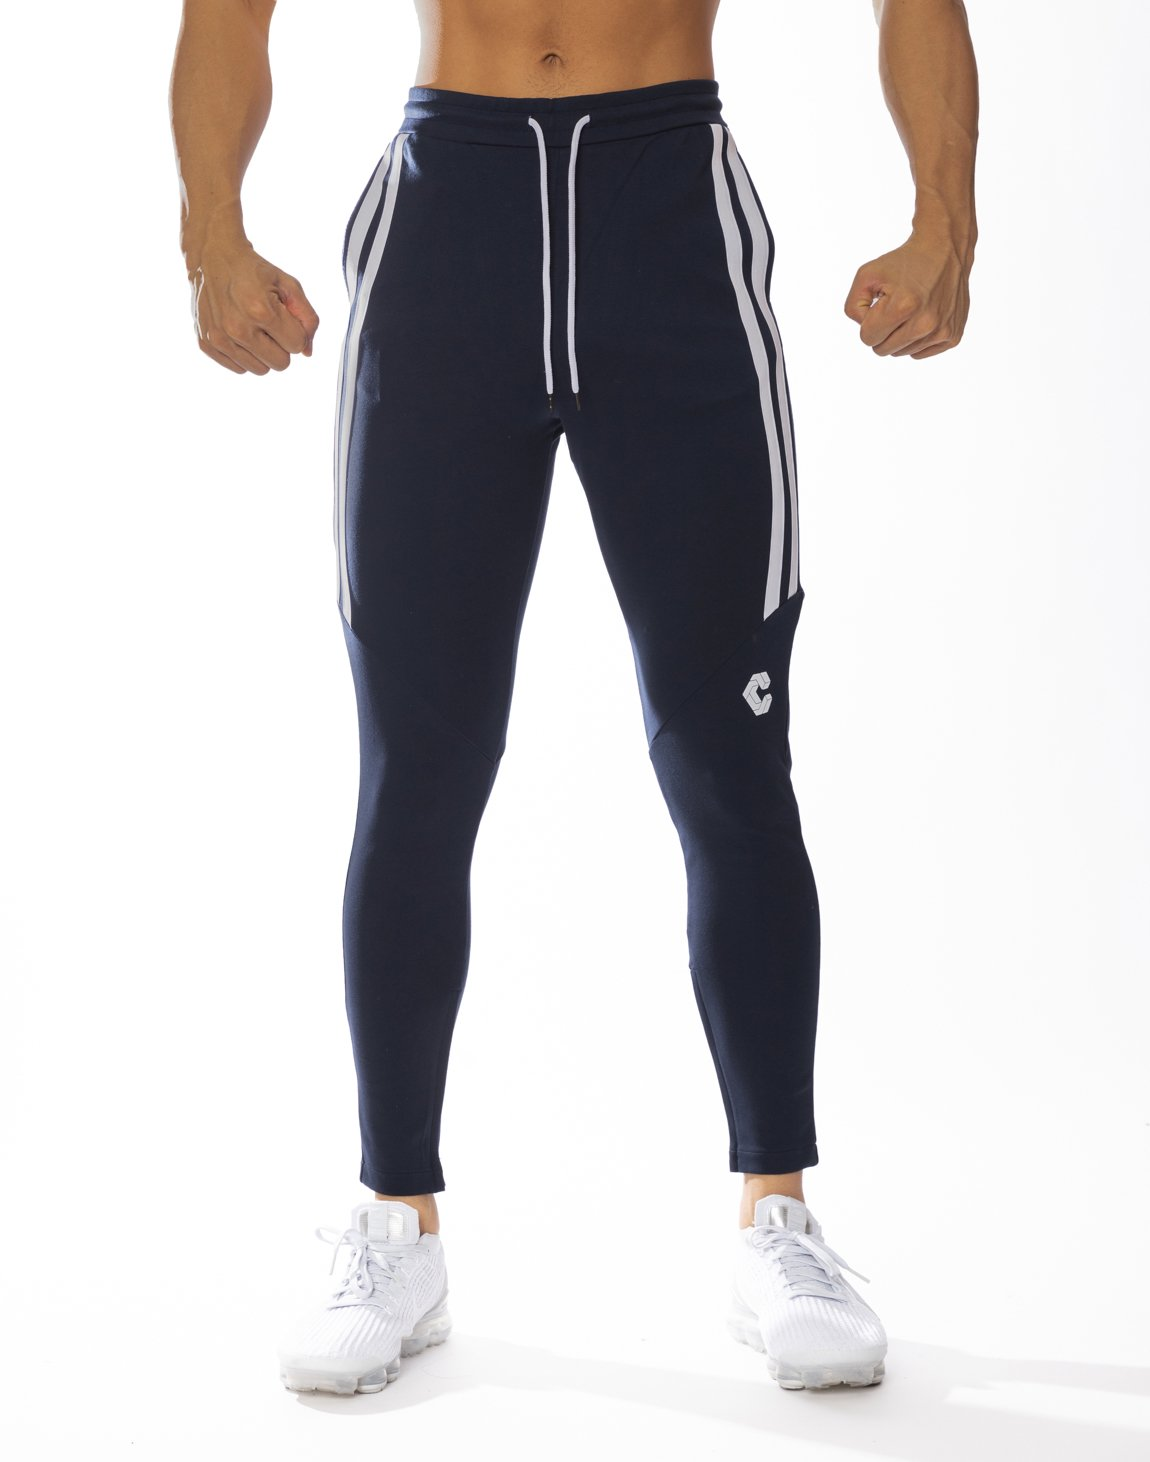 <img class='new_mark_img1' src='https://img.shop-pro.jp/img/new/icons1.gif' style='border:none;display:inline;margin:0px;padding:0px;width:auto;' />CRONOS HALF 2STRIPE CALF LOG PANTS 【NAVY】